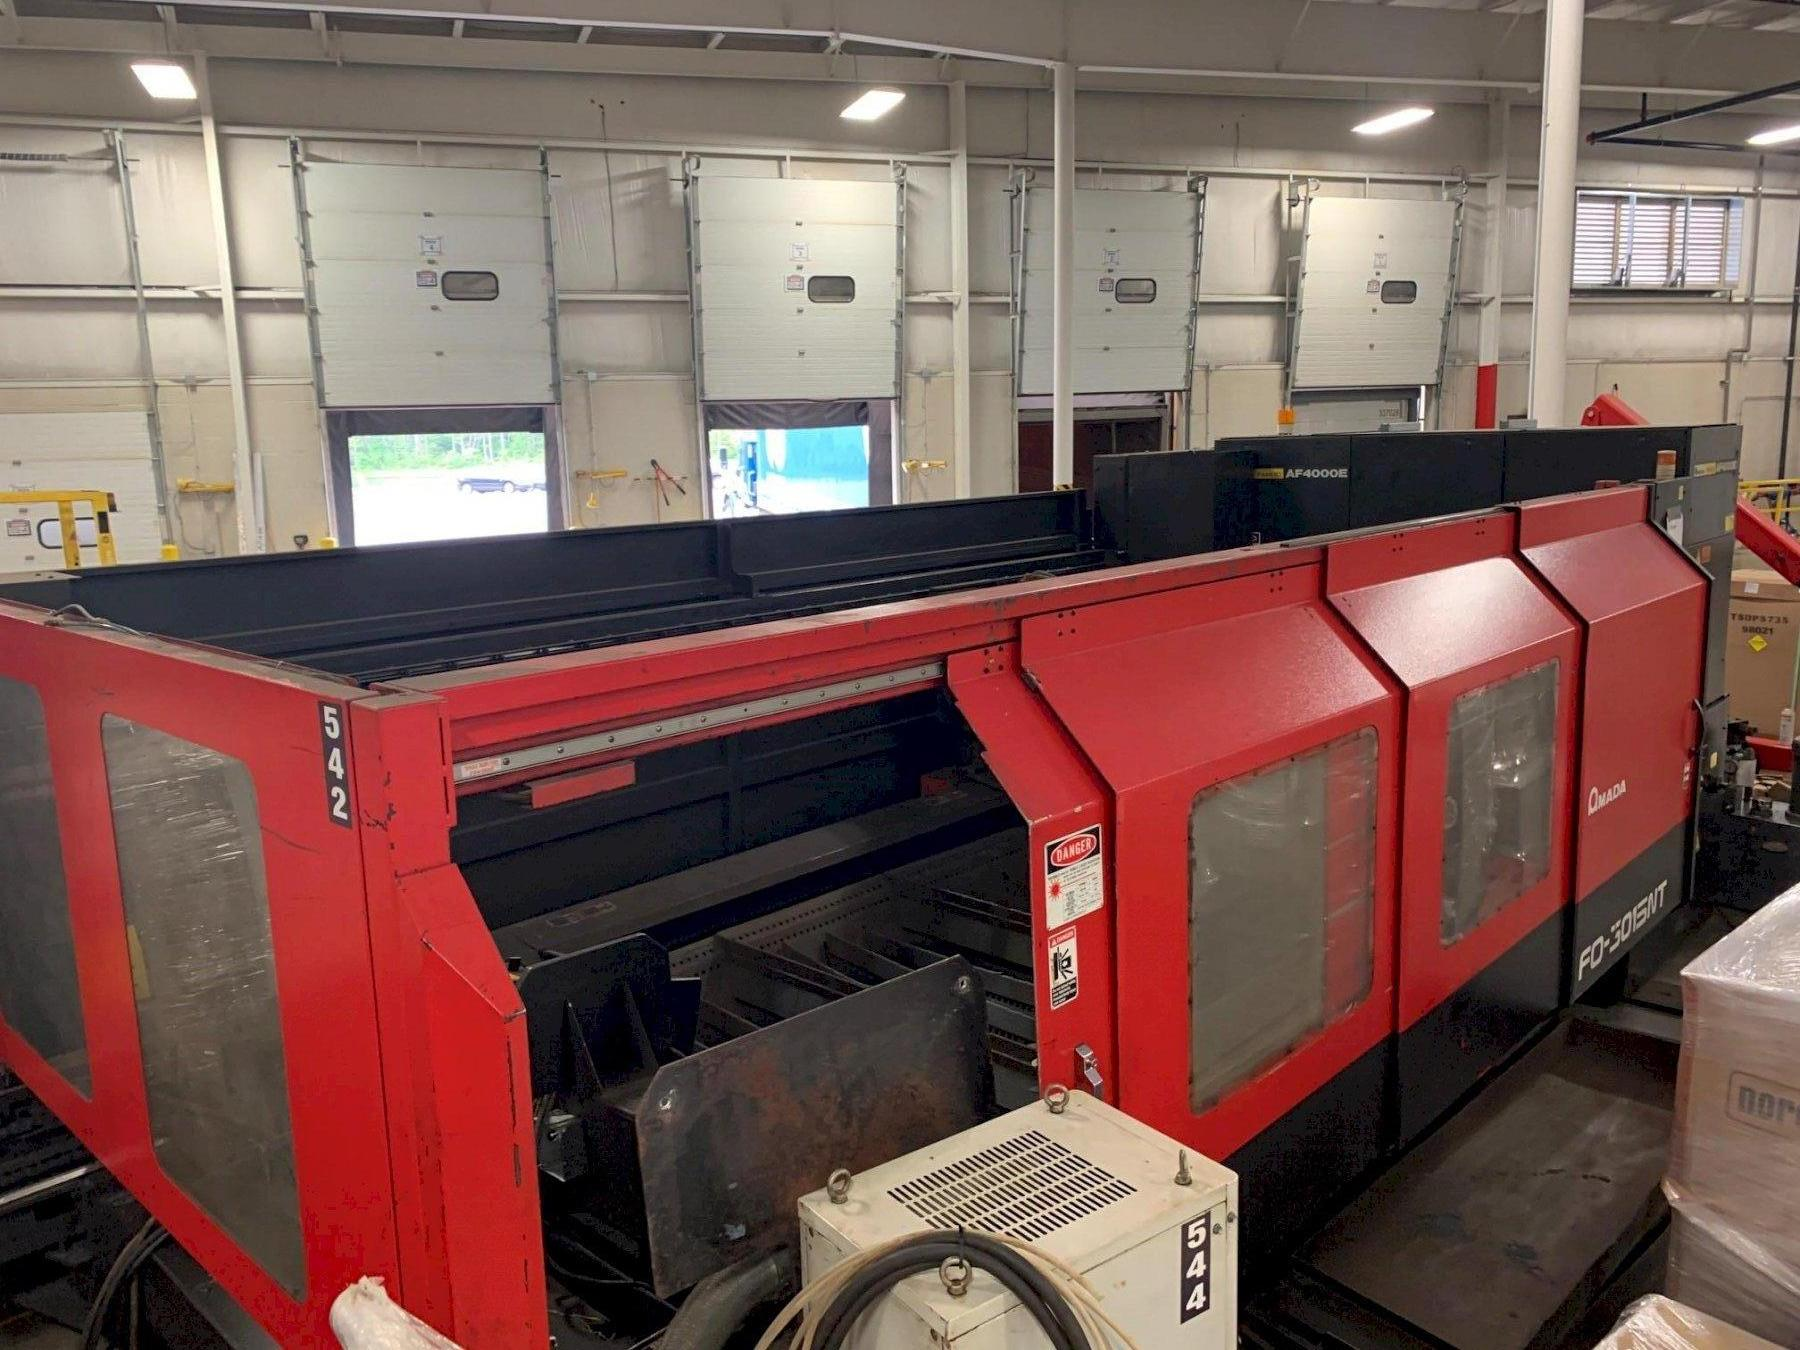 "4000 WATT x 60"" x 120"" AMADA LASER CUTTING CELL WITH SHUTTLE TABLE: STOCK 13181"